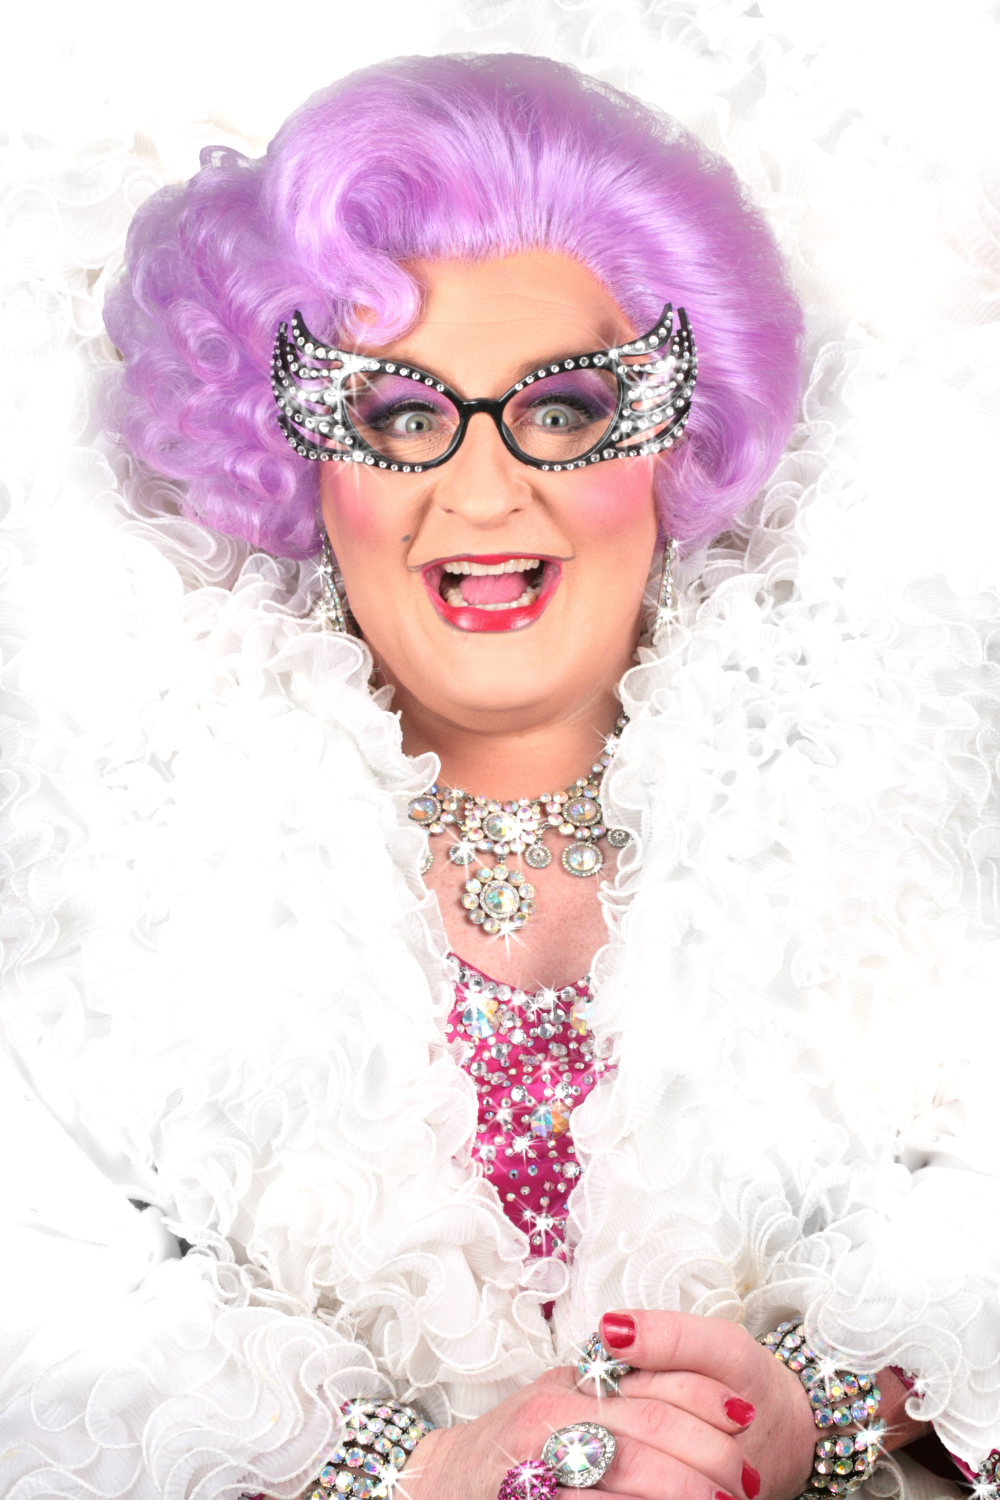 Dame Edna impersonator / look alike Michael Walters 2015-3-21-0:13:26